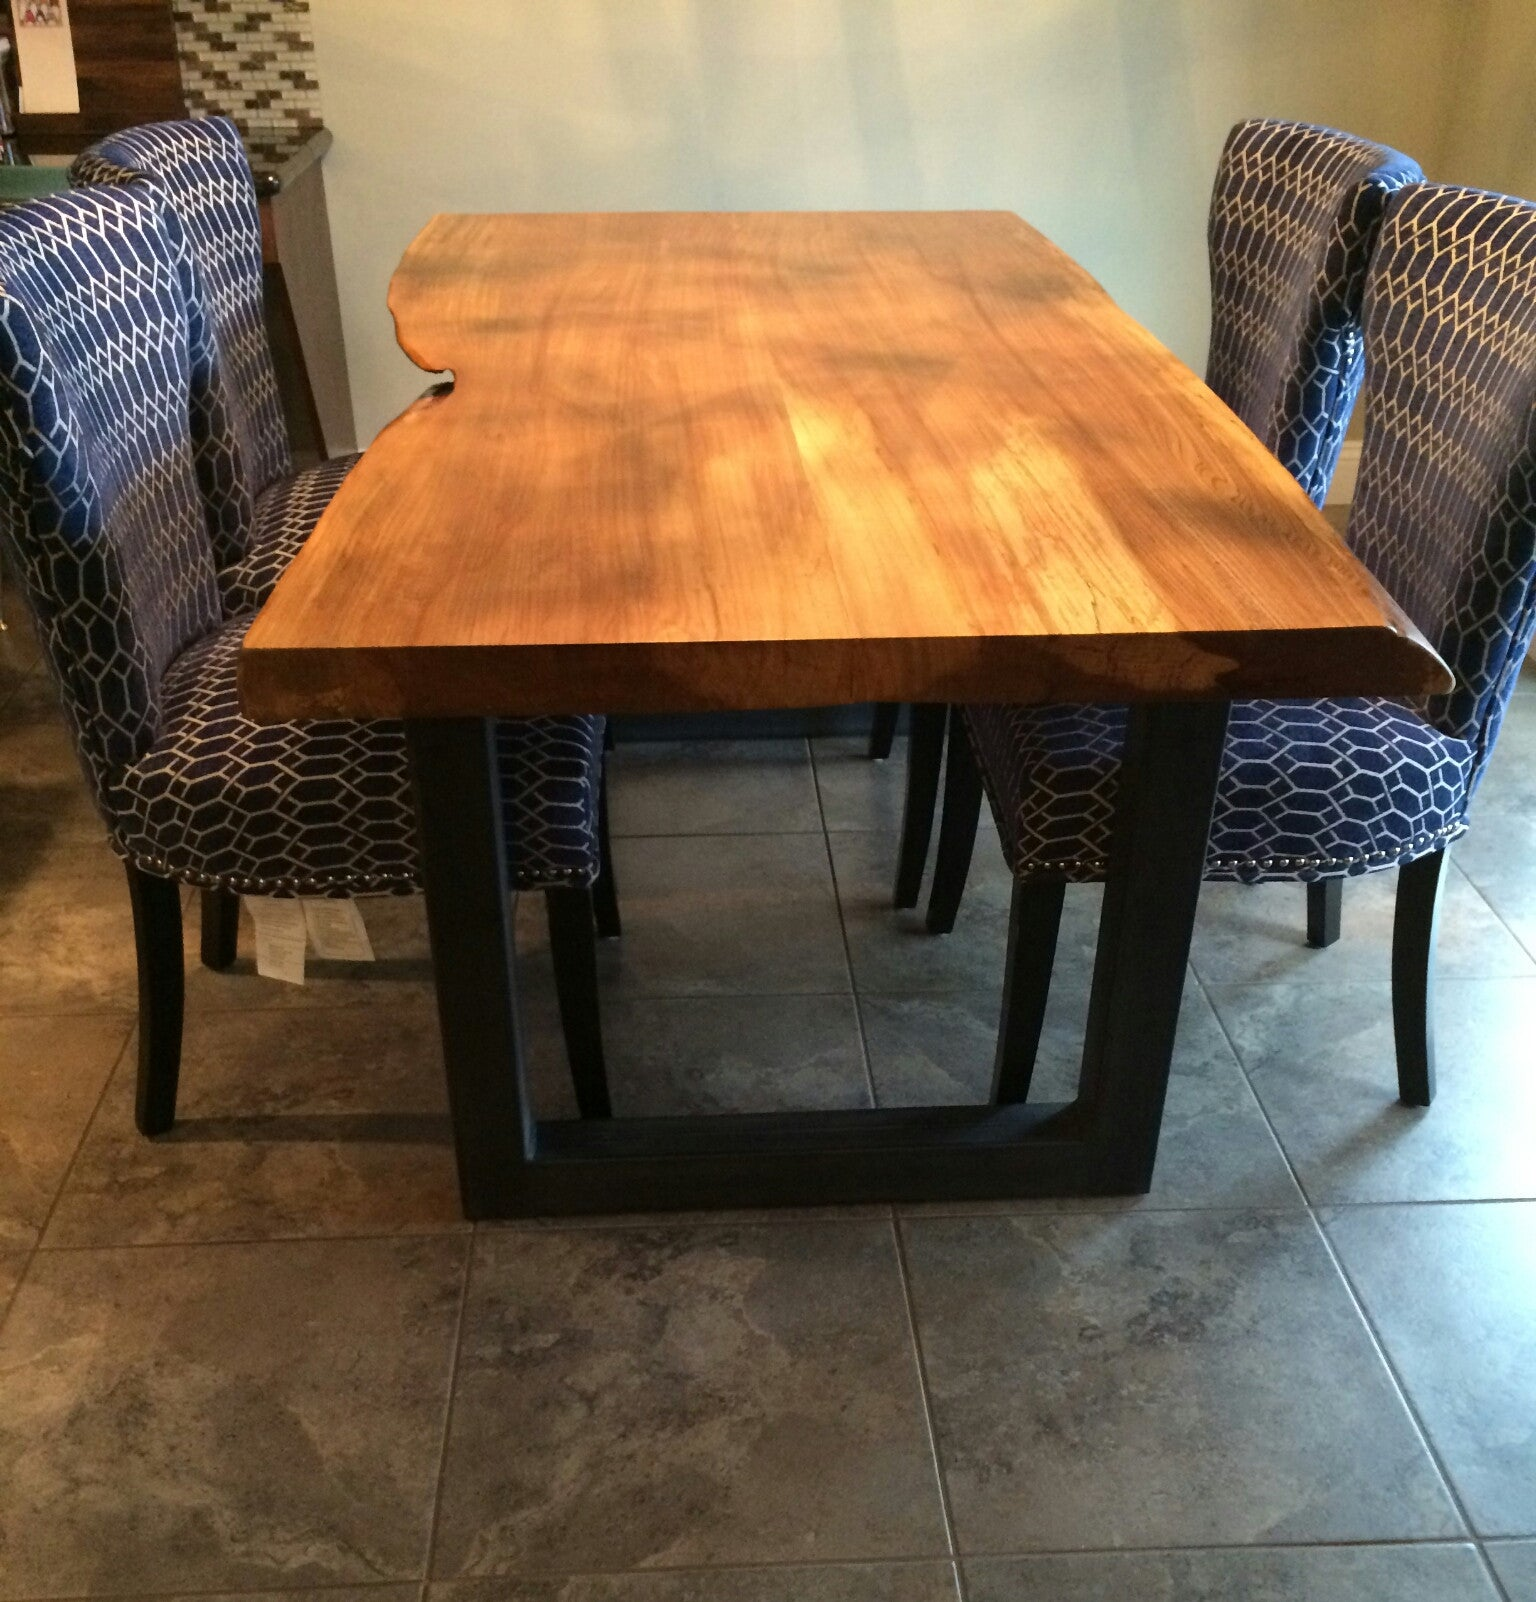 Made to Order Live Edge Dining Table- Your Custom Table- Industrial- Modern- Rustic- Handmade- Steel- Wood & Made to Order Live Edge Dining Table- Your Custom Table- Industrial ...